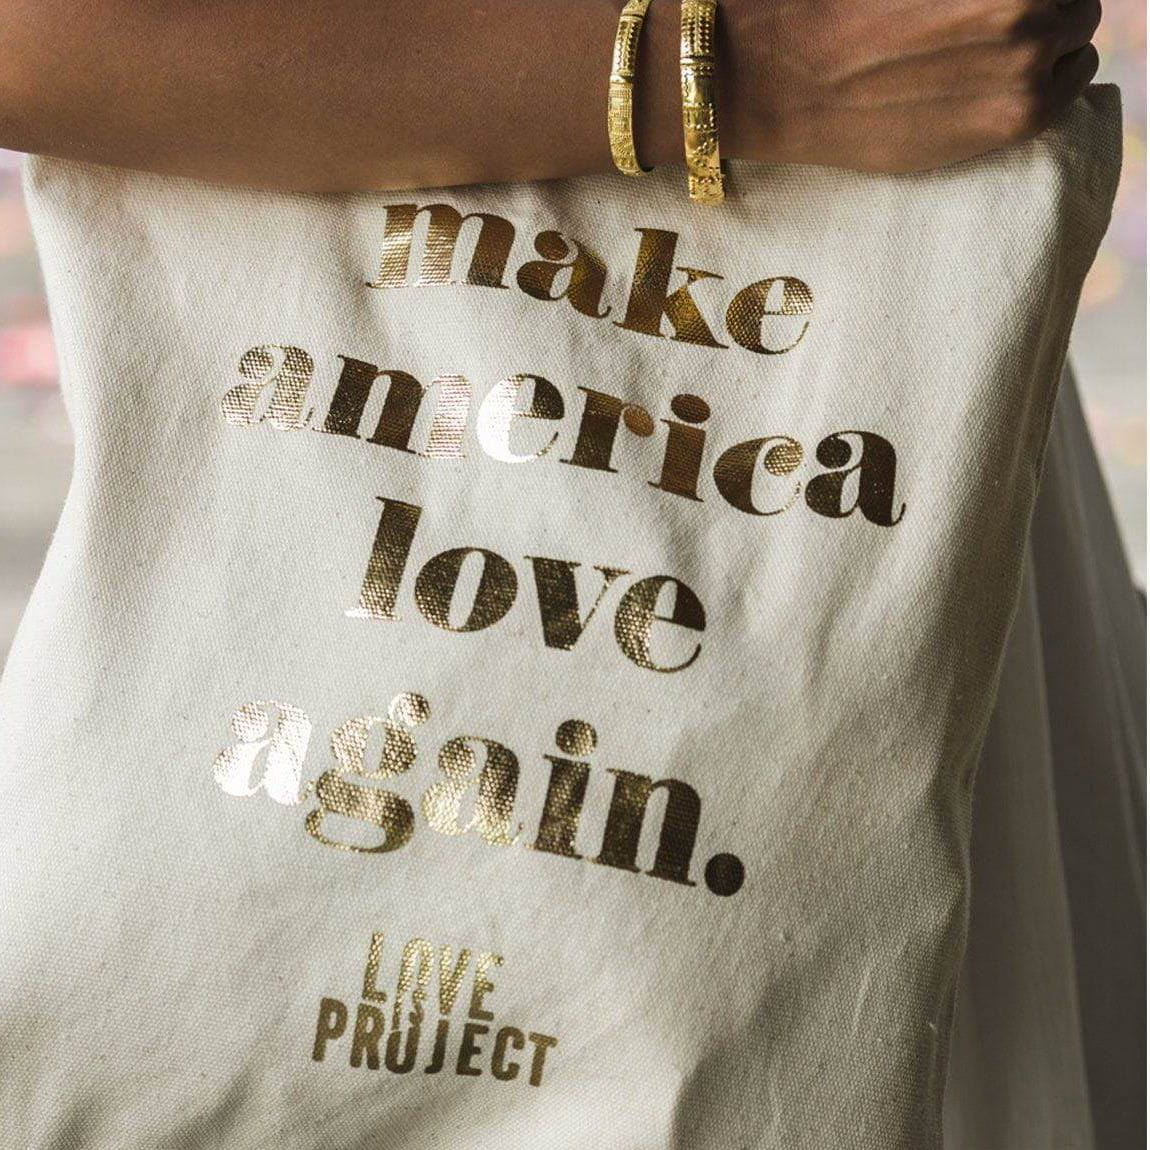 Make America Love Again Tote - White gold foil made by artisans in Indonesia. Love Is Project create jobs worldwide.